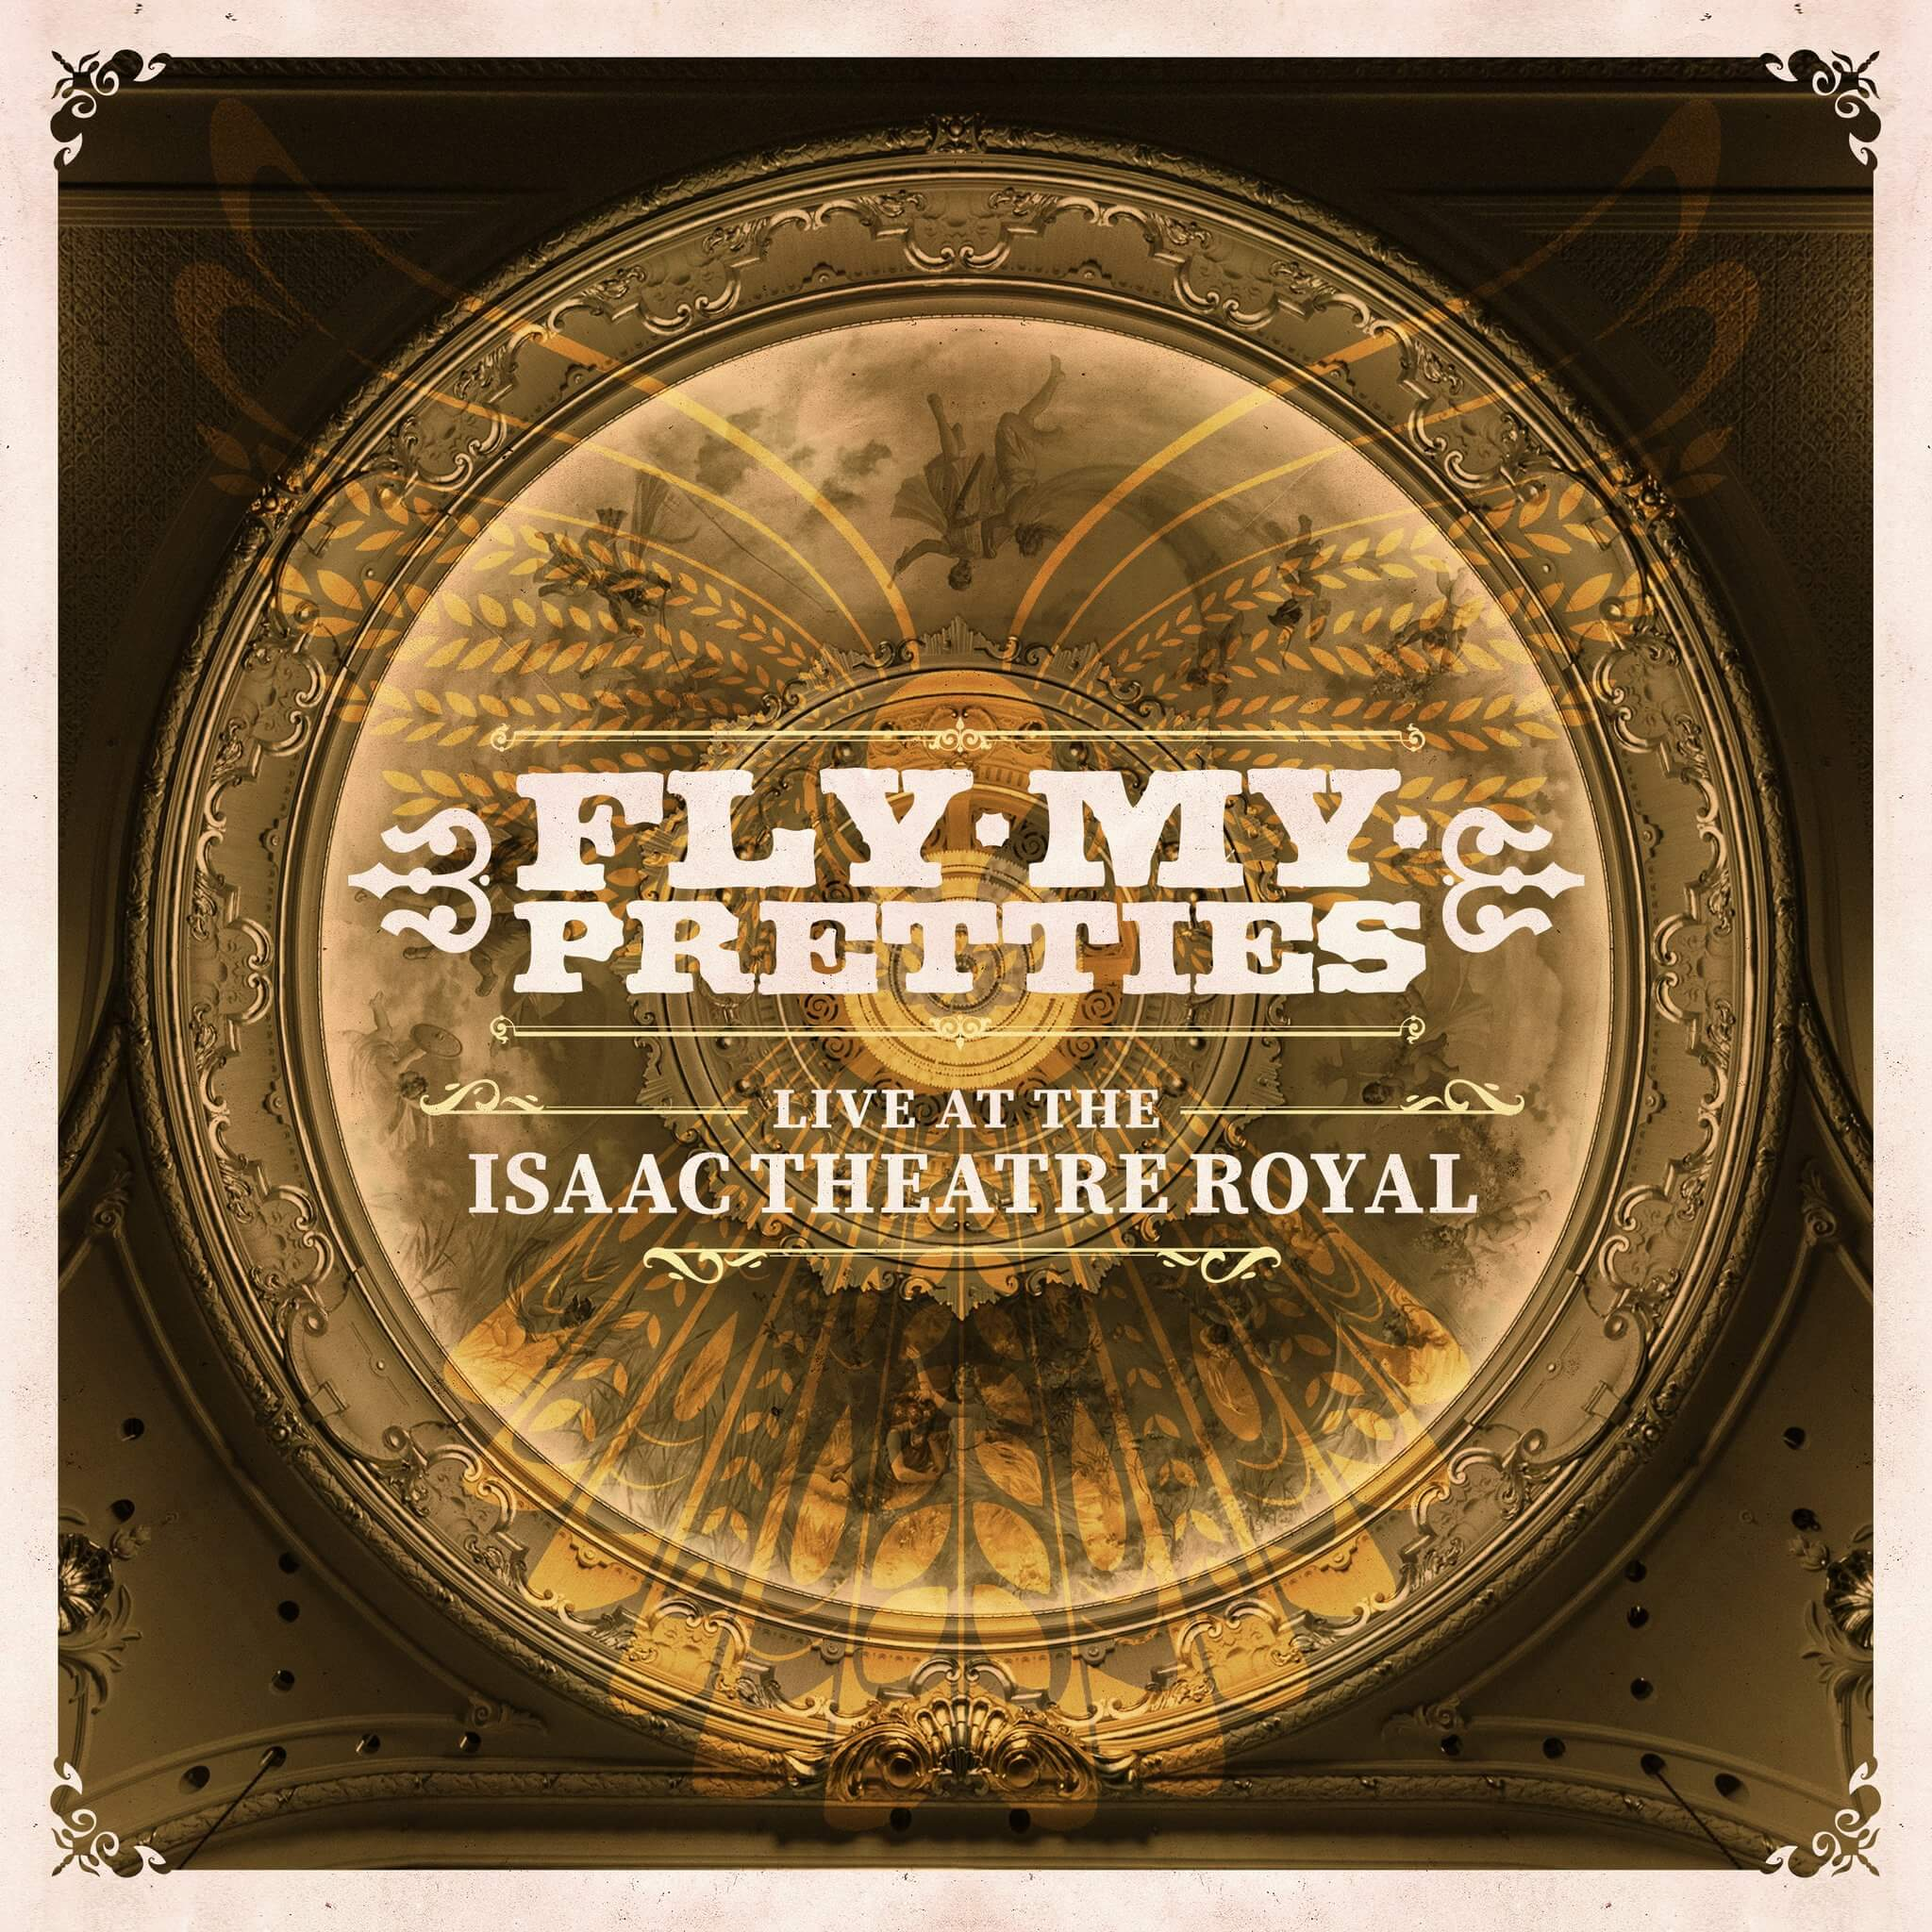 rt-flymyprettiesnz-our-new-release-live-at-the-isaac-theatre-royal-out-today-hit-httpst-coycz8rbccvc-for-all-info-links-xxx-htt